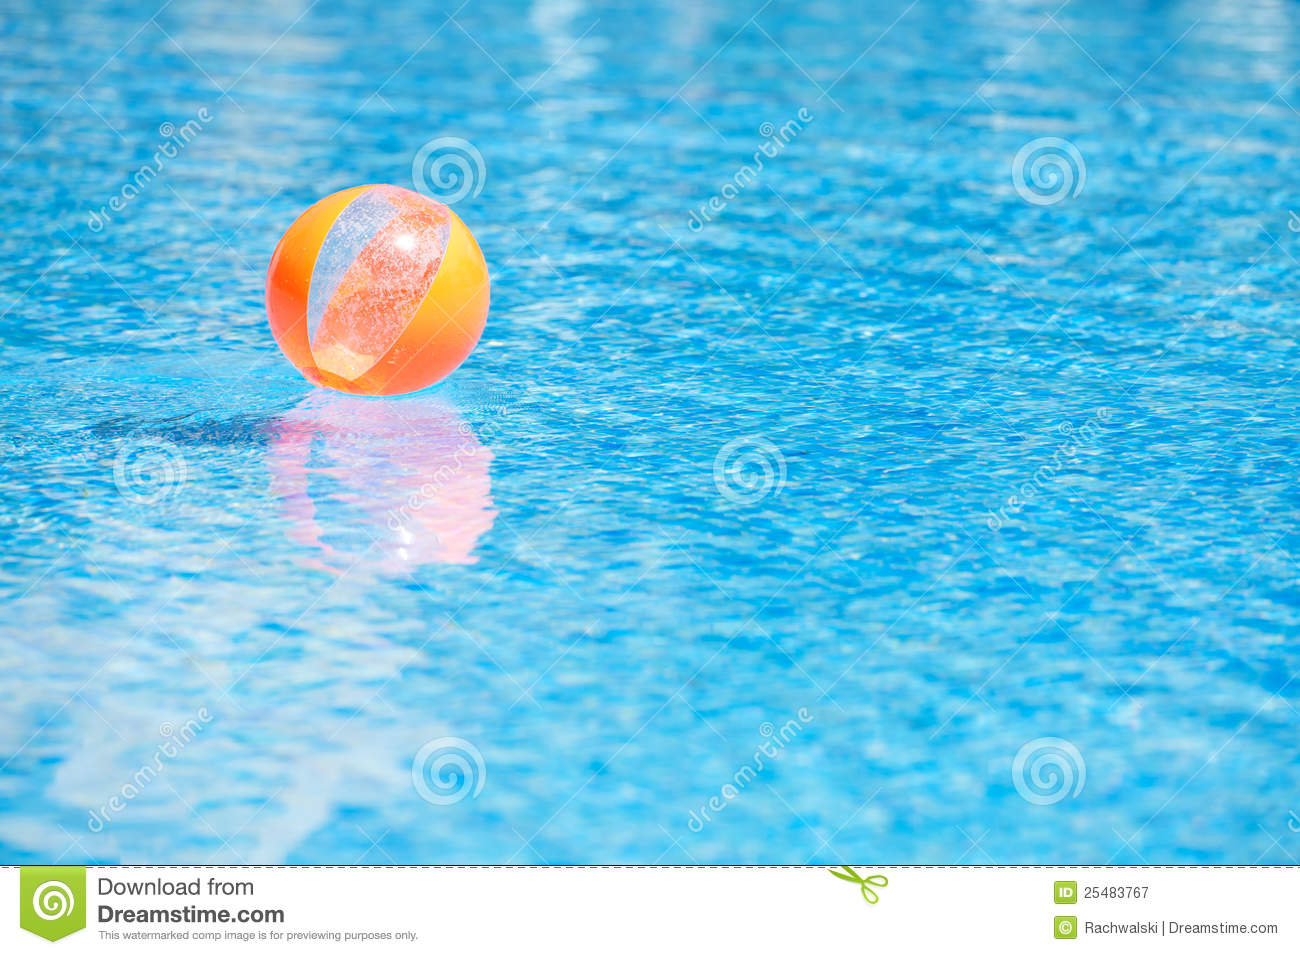 Swimming Pool Beach Ball Background interesting pool water with beach ball party in a for inspiration